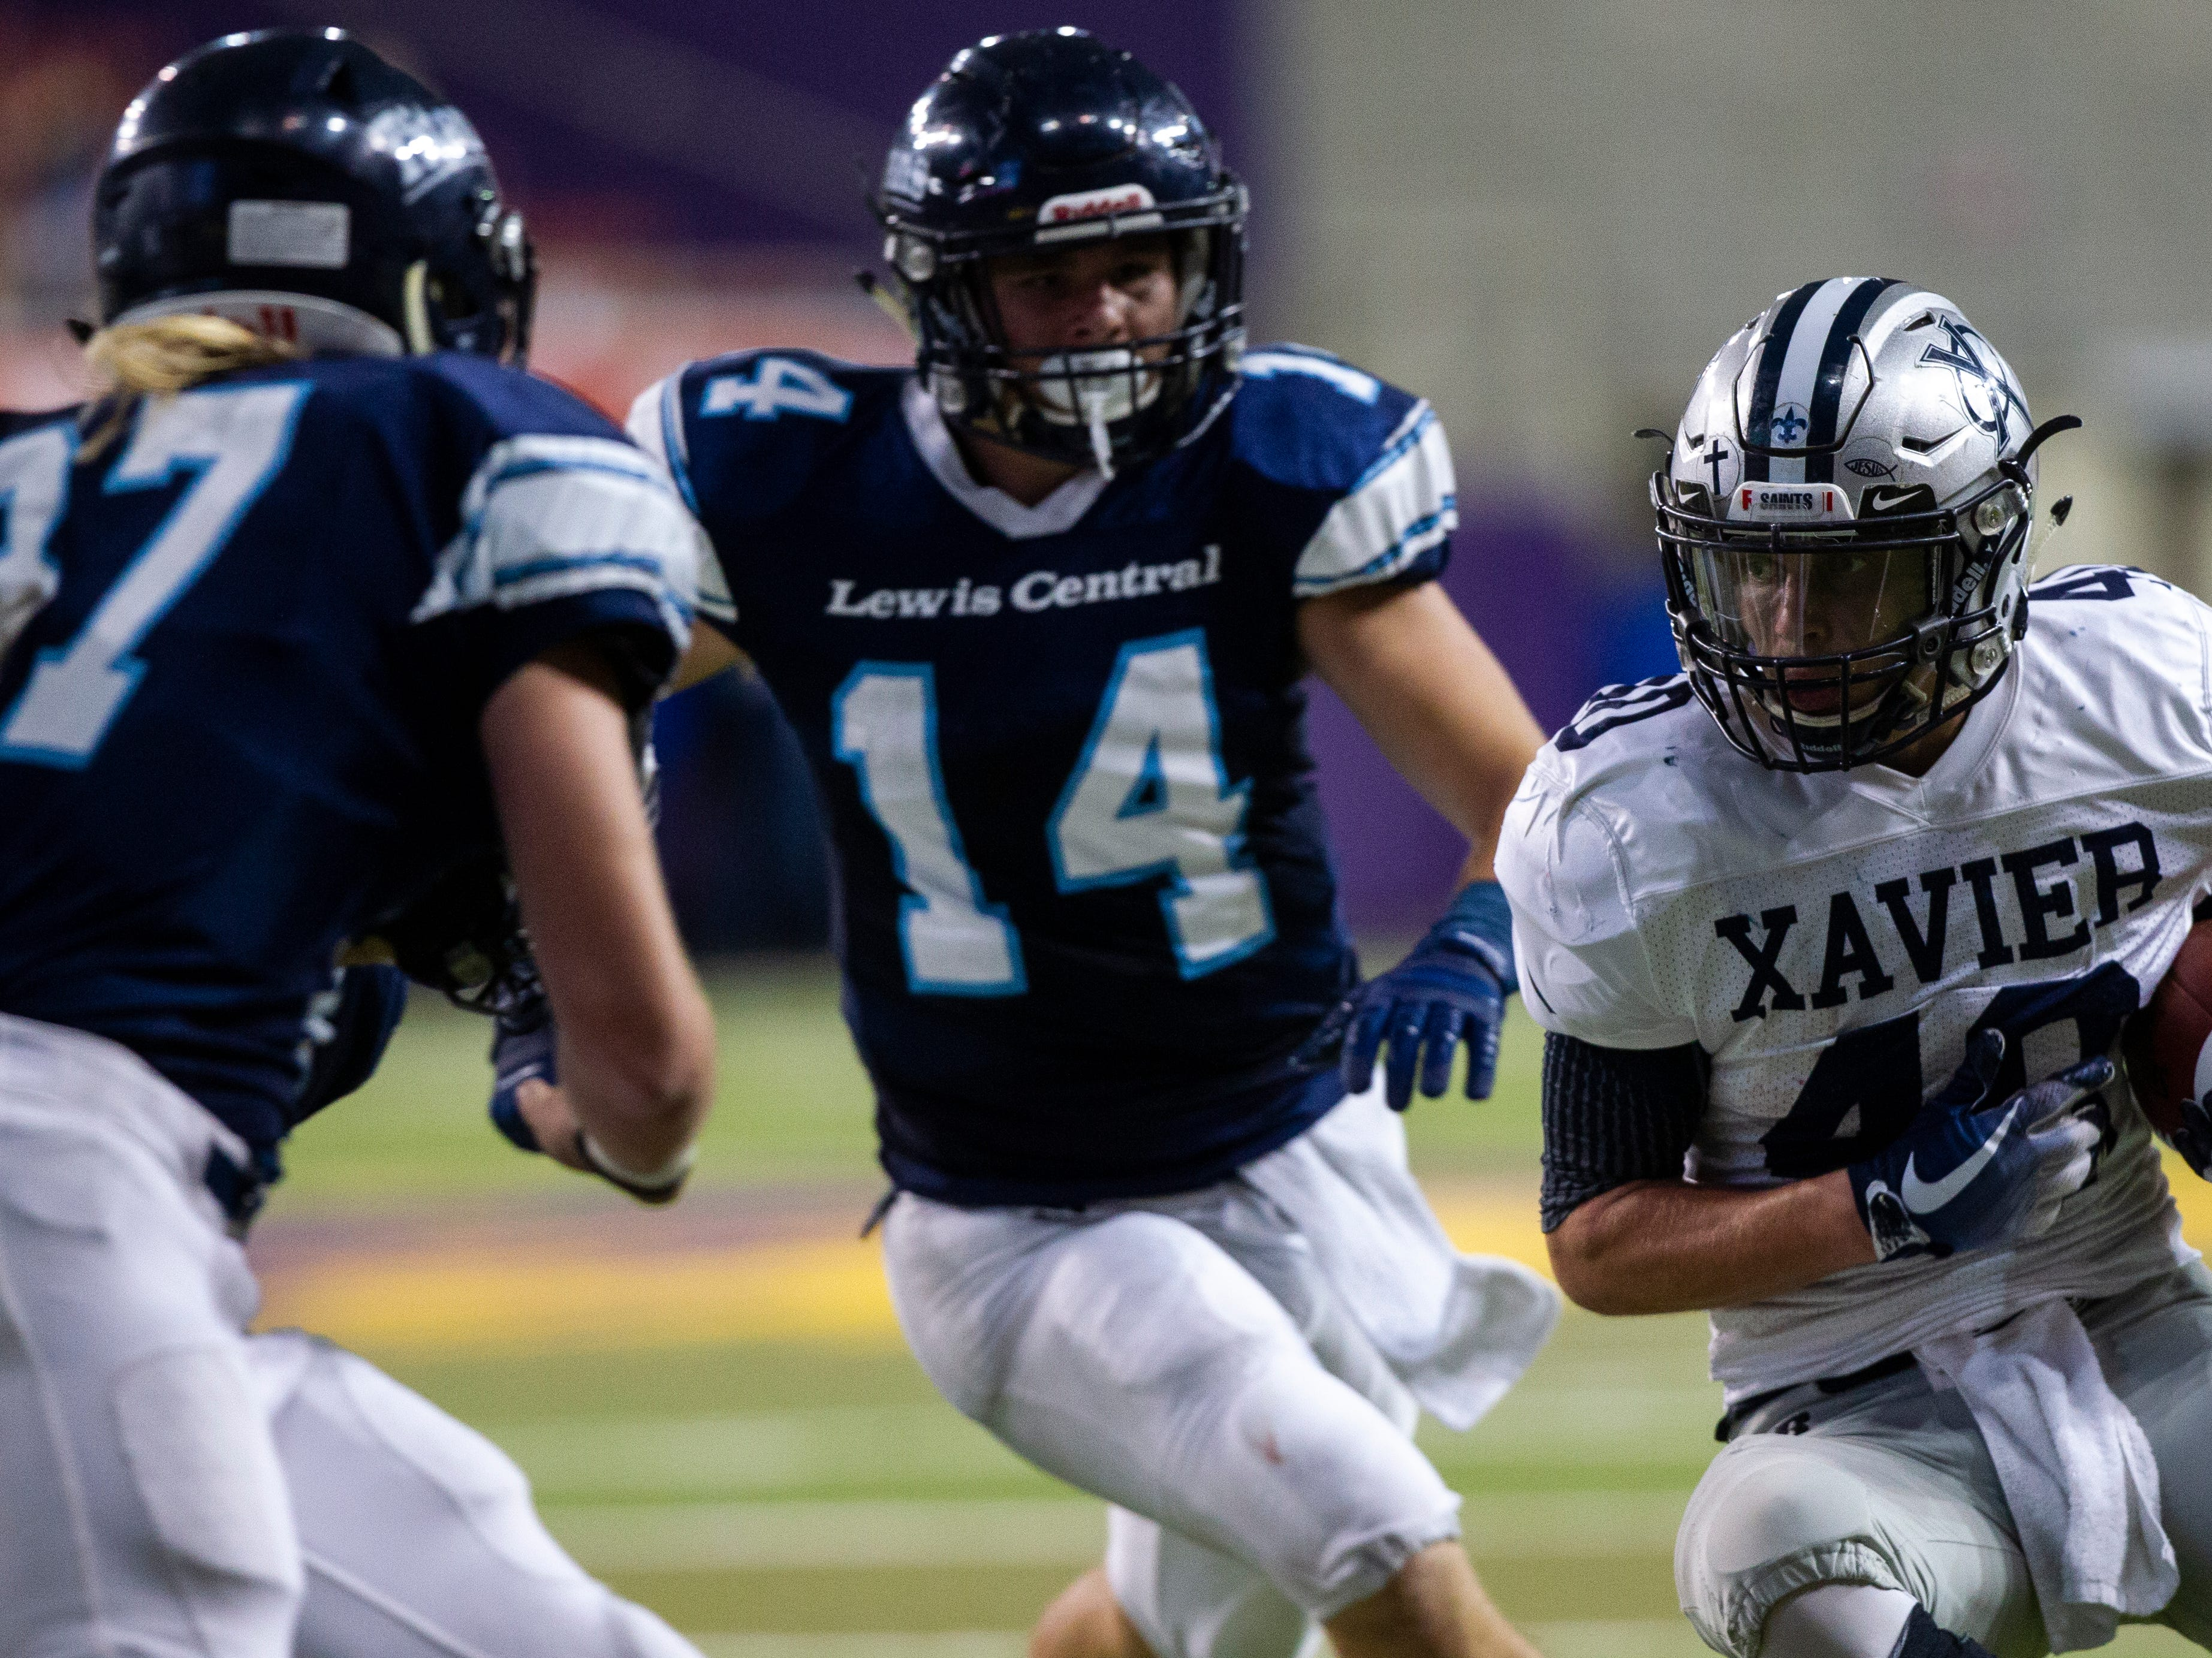 Cedar Rapids Xavier's Braden Stovie (40) gets tackled by Lewis Central's Josh Simmons (14) during a Class 3A semi finals on Thursday, Nov. 8, 2018, at the UNI-Dome in Cedar Falls.